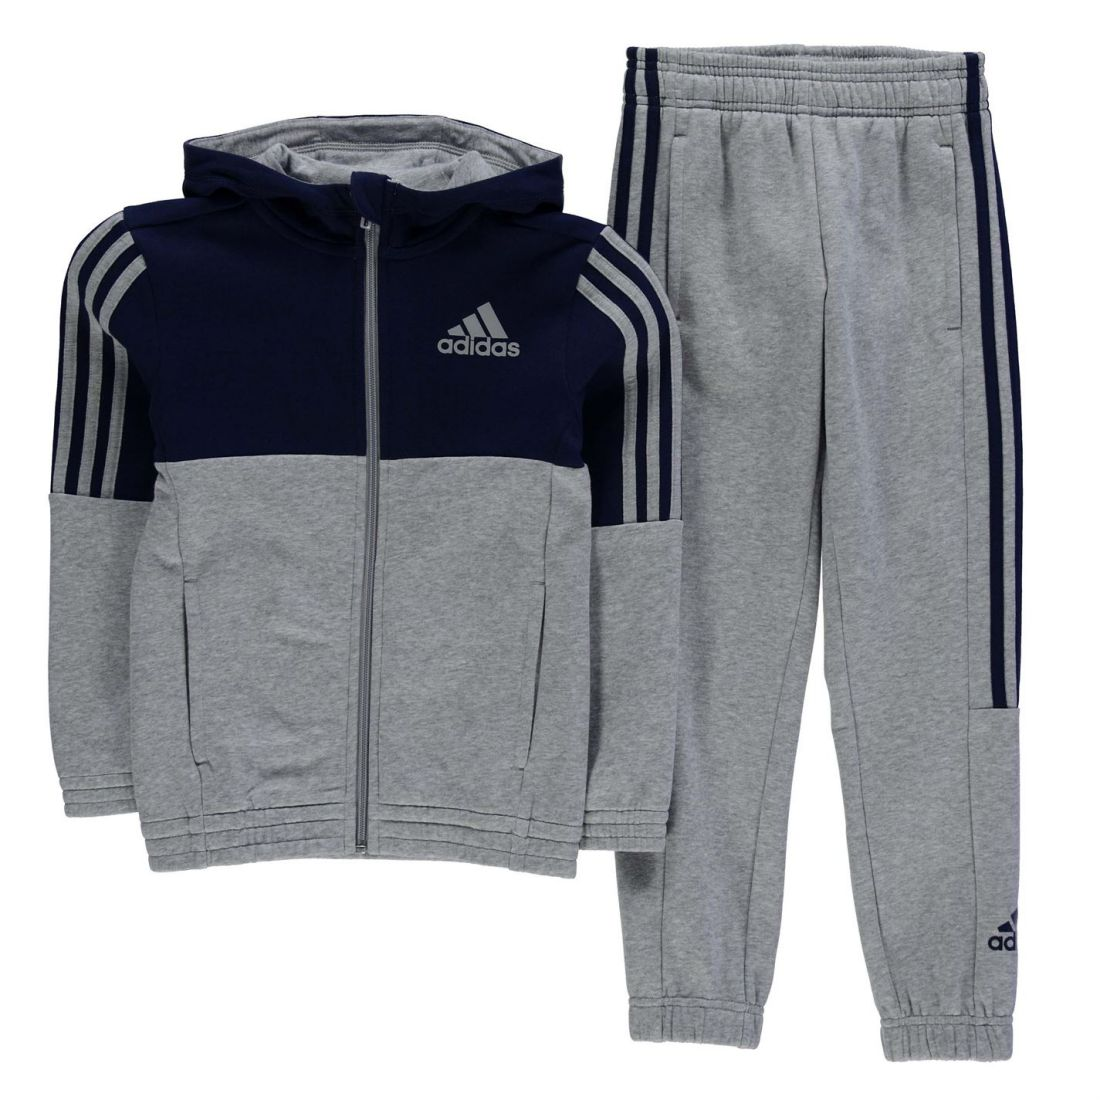 03faf4b174727 adidas Childrens 3S Jogging Suit Boys Stretchy Sport Active Bottoms ...